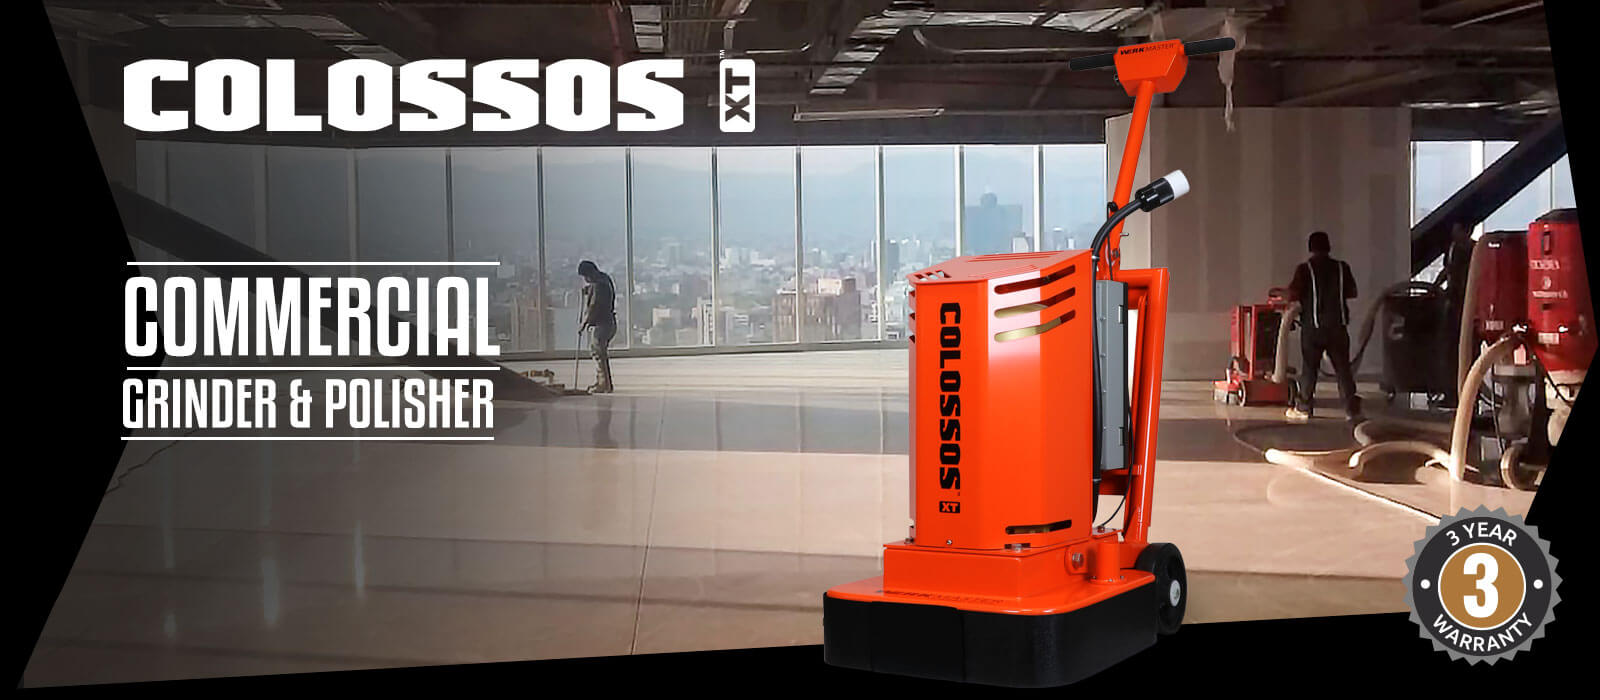 Colossos XT Commercial Grinder & Polisher